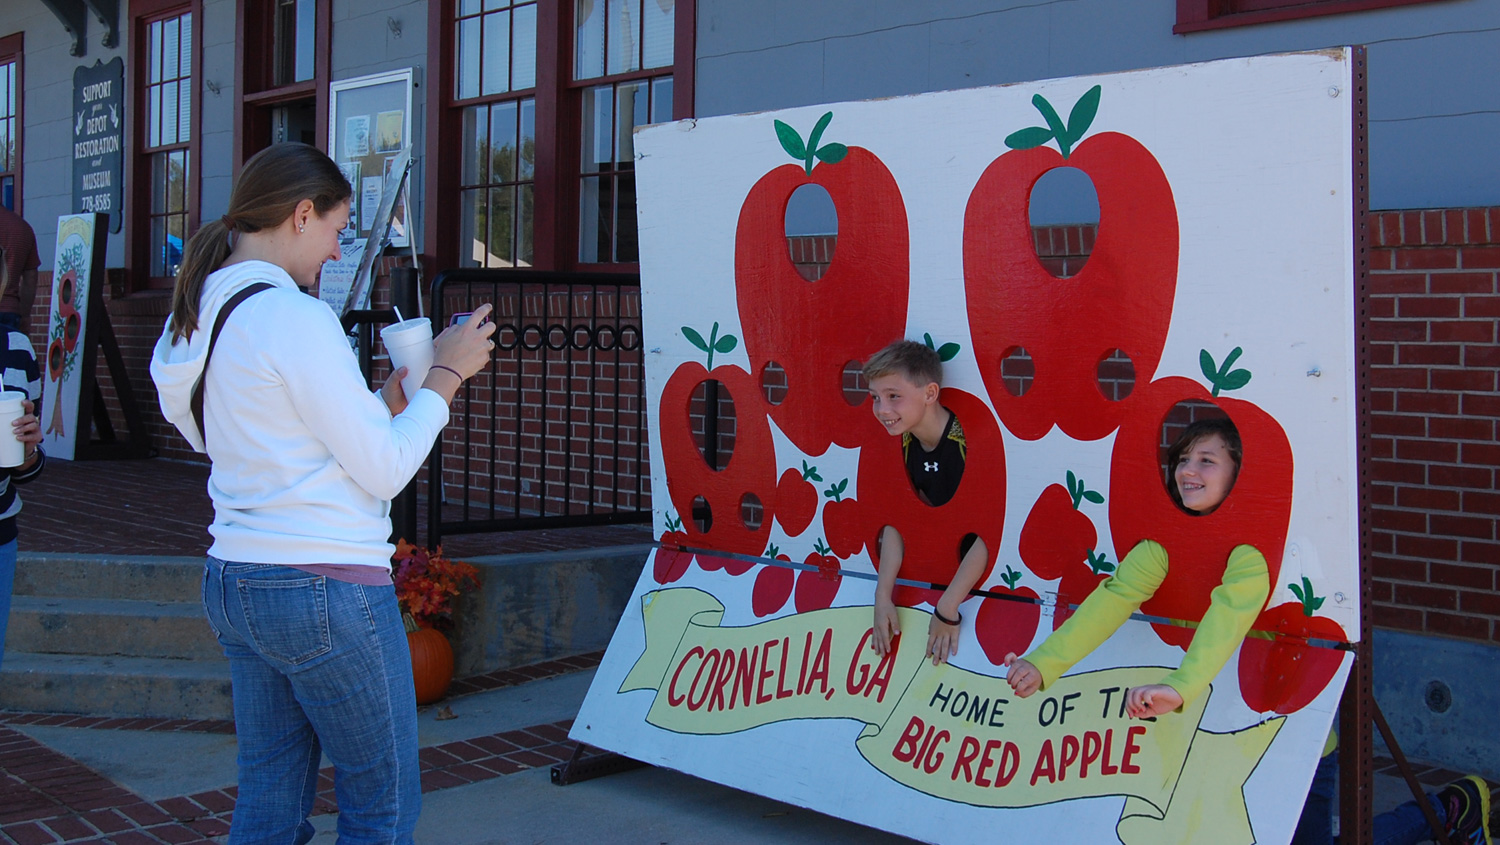 Big Red Apple Festival in Cornelia, Georgia